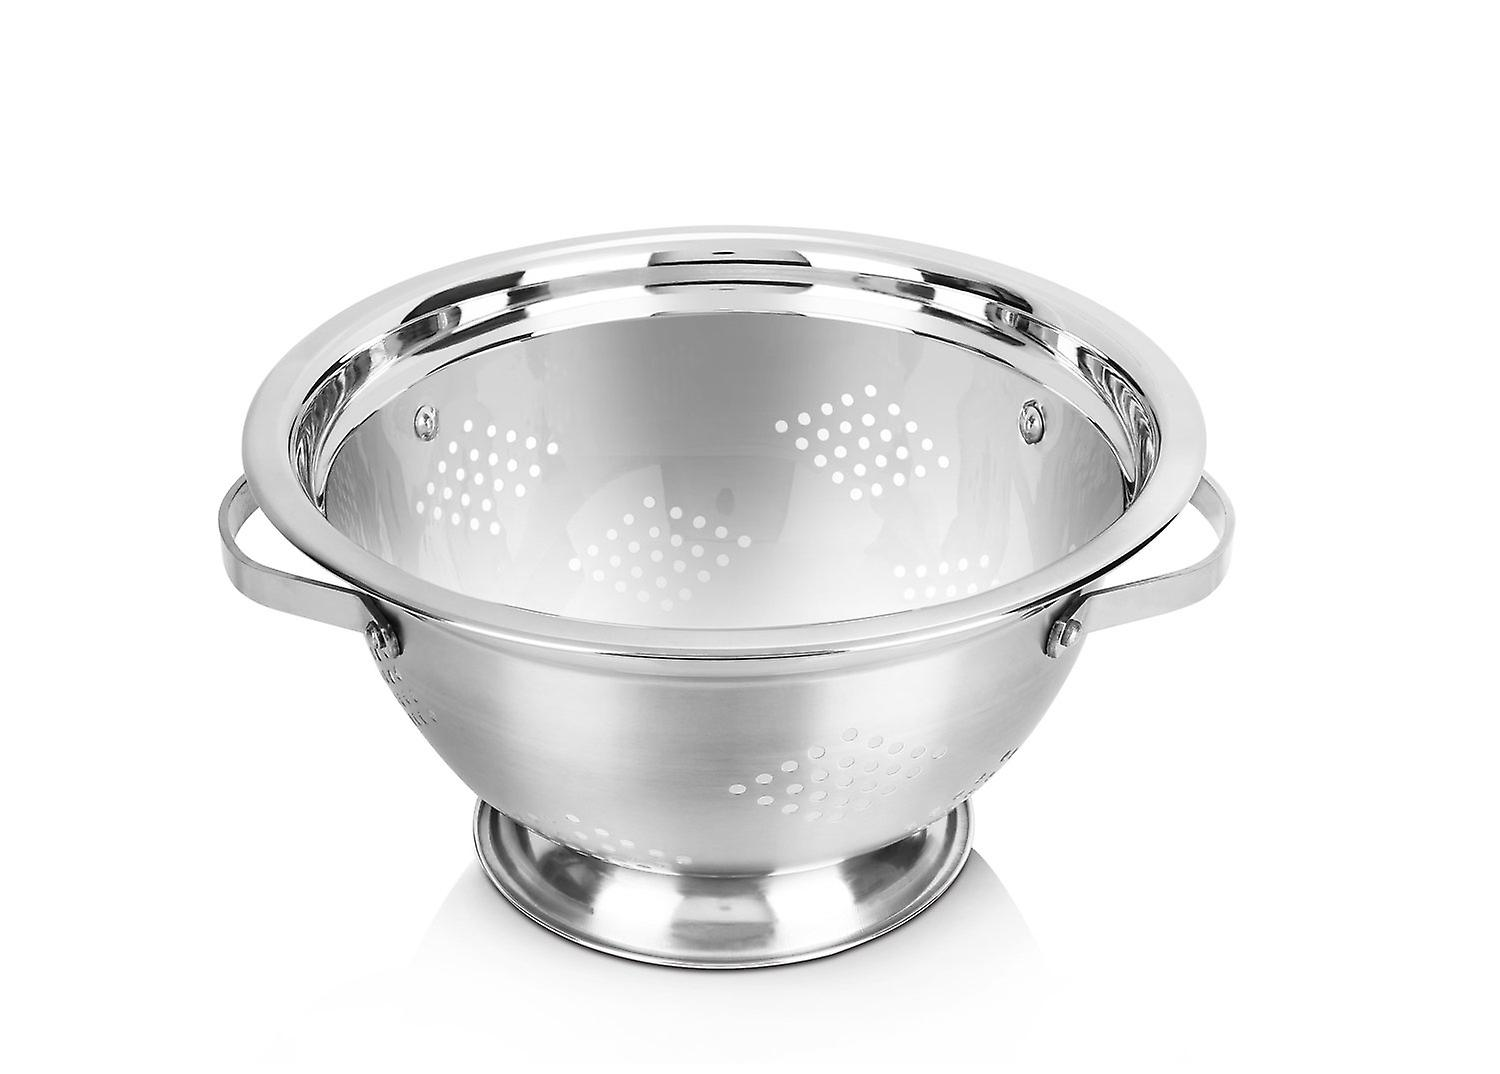 Penguin Home - Professional Stainless Steel Colander